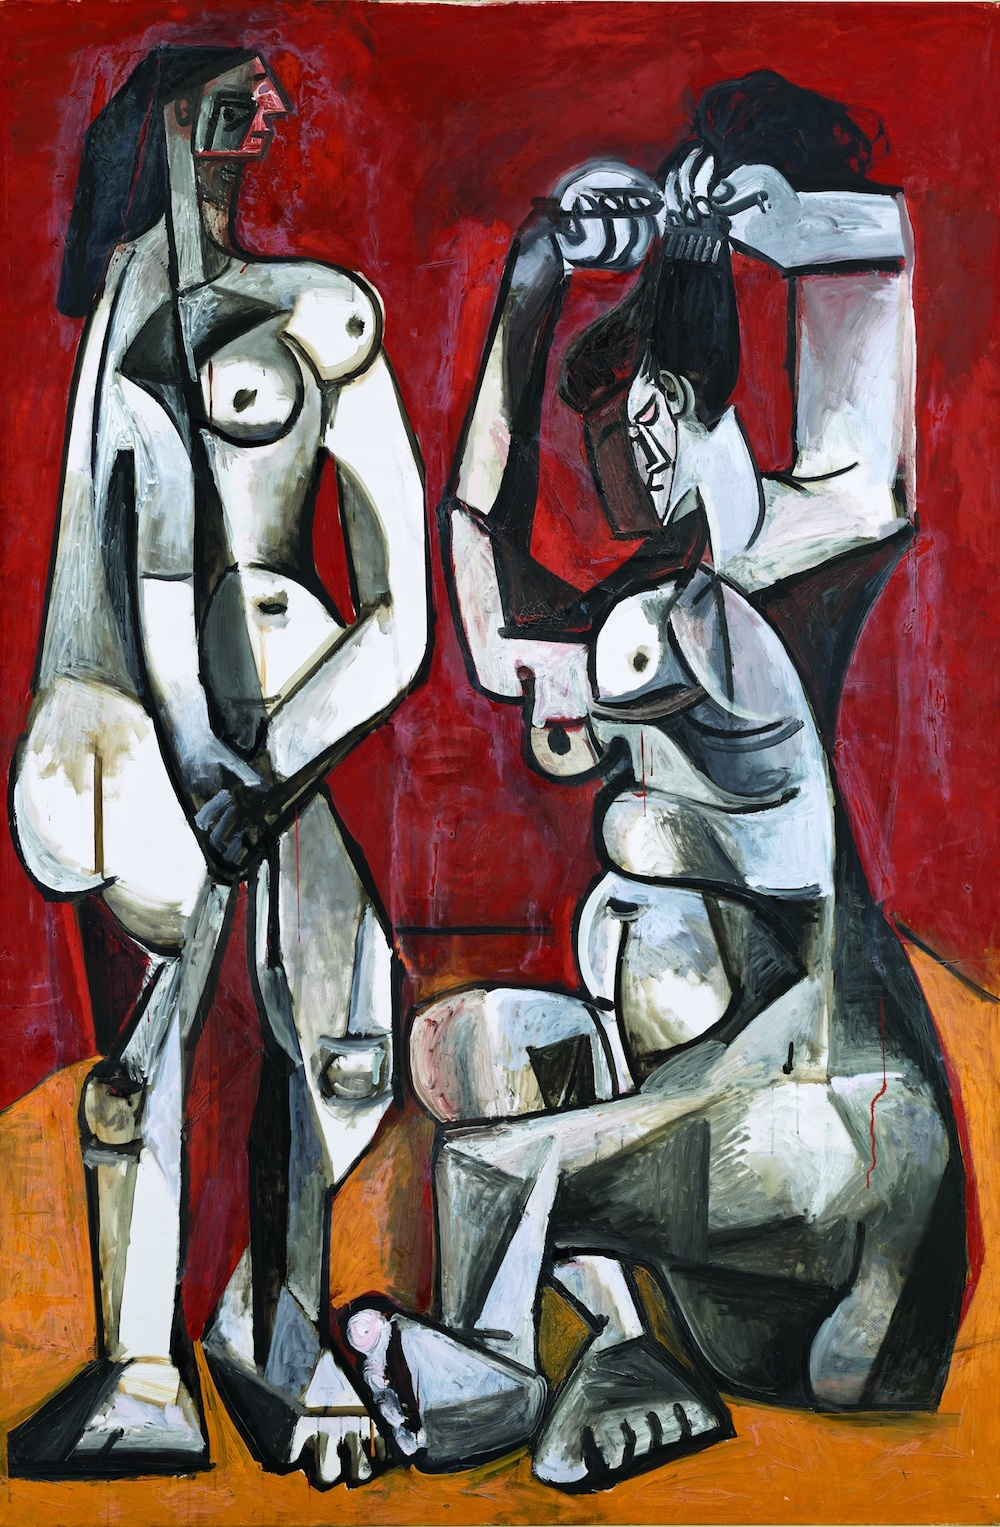 Pablo Picasso (1881-1973), Women at Their Toilette, Cannes, January 4, 1956. © Estate of Picasso / SODRAC (2018). Photo © RMN-Grand Palais / Art Resource, NY / Mathieu Rabeau